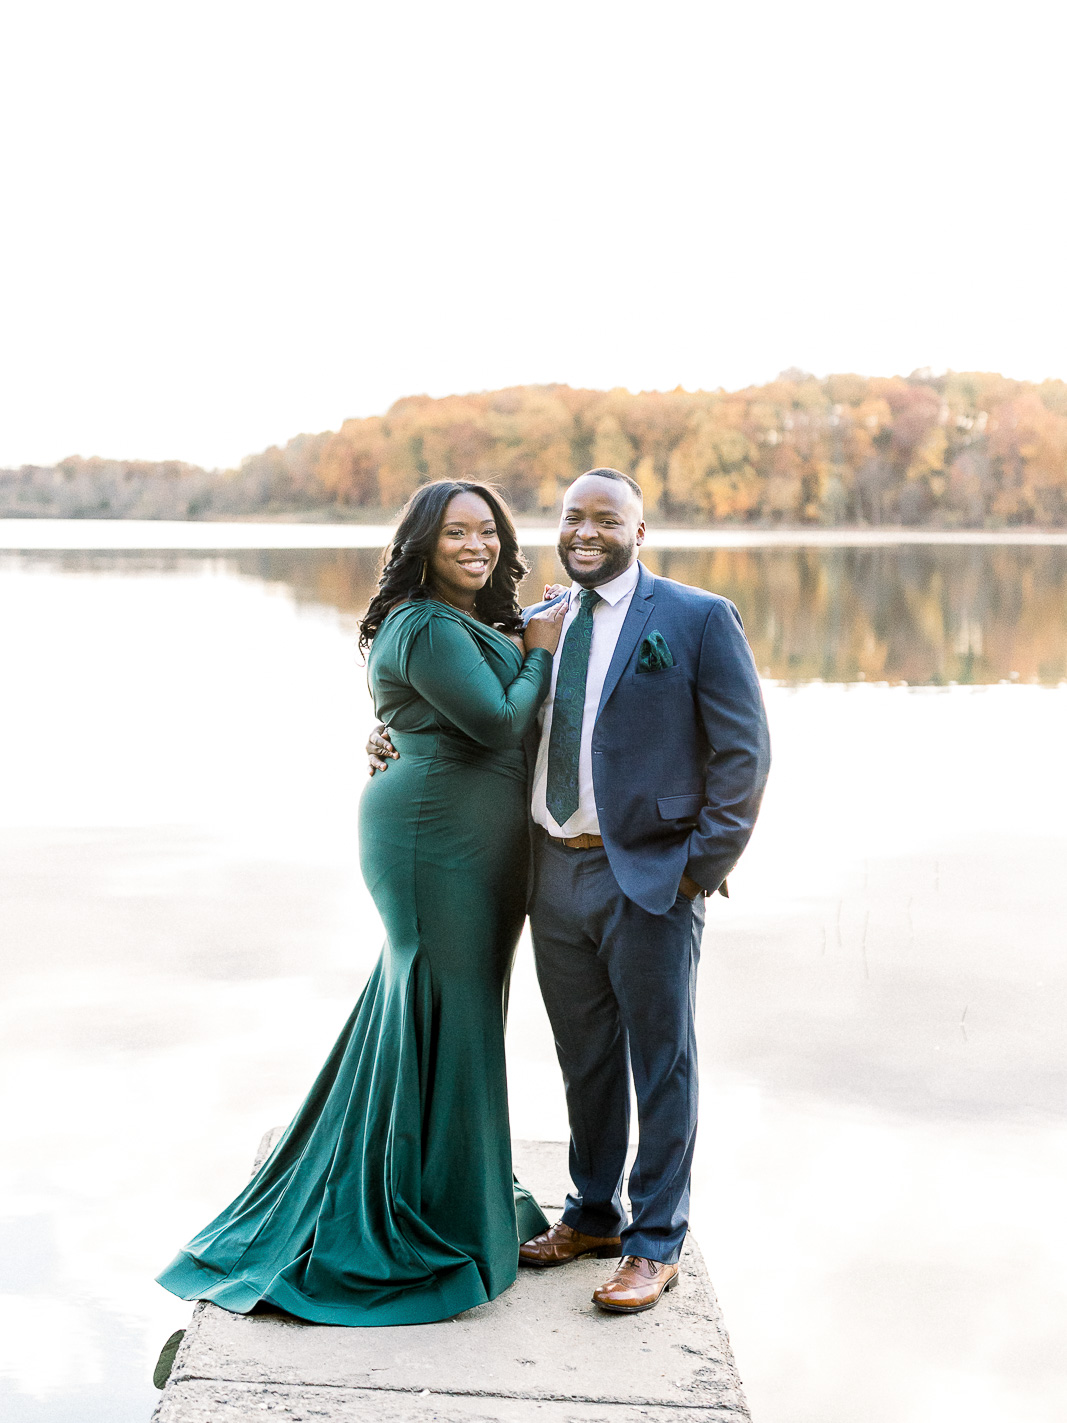 fall engagement session seven lakes state park emerald and navy